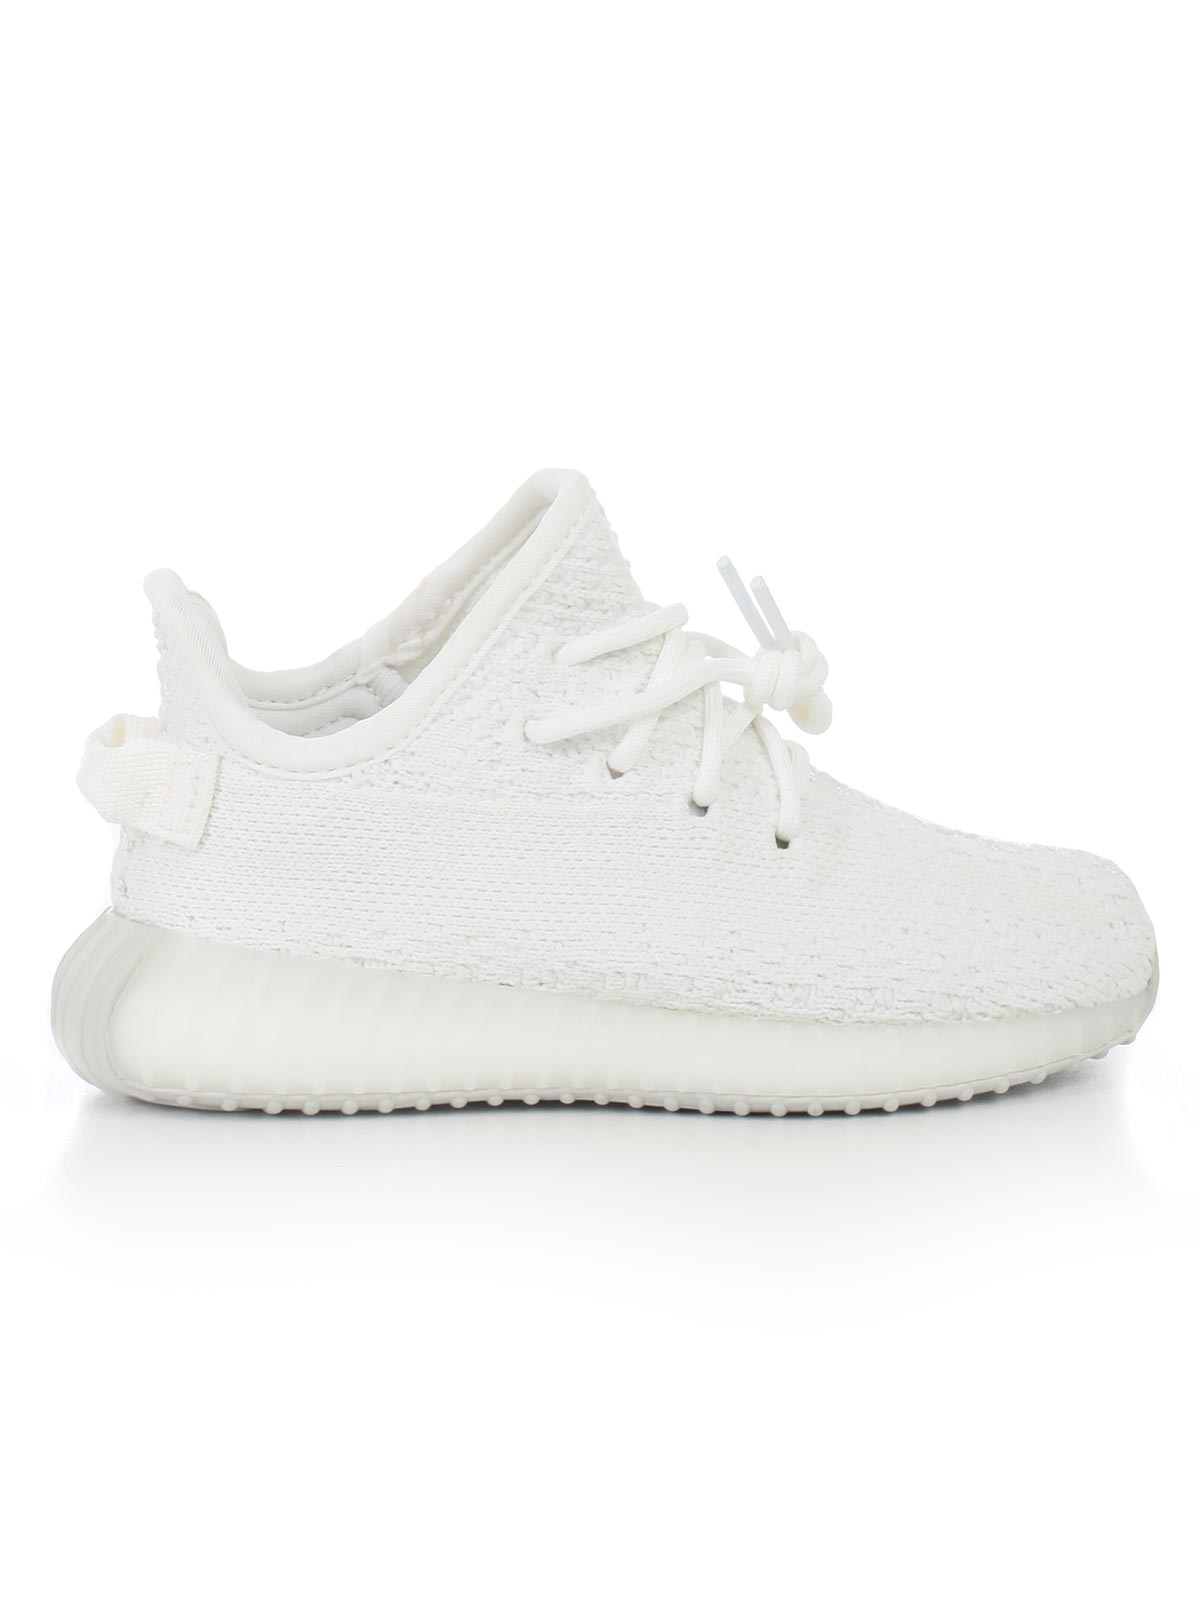 Picture of YEEZY SHOES